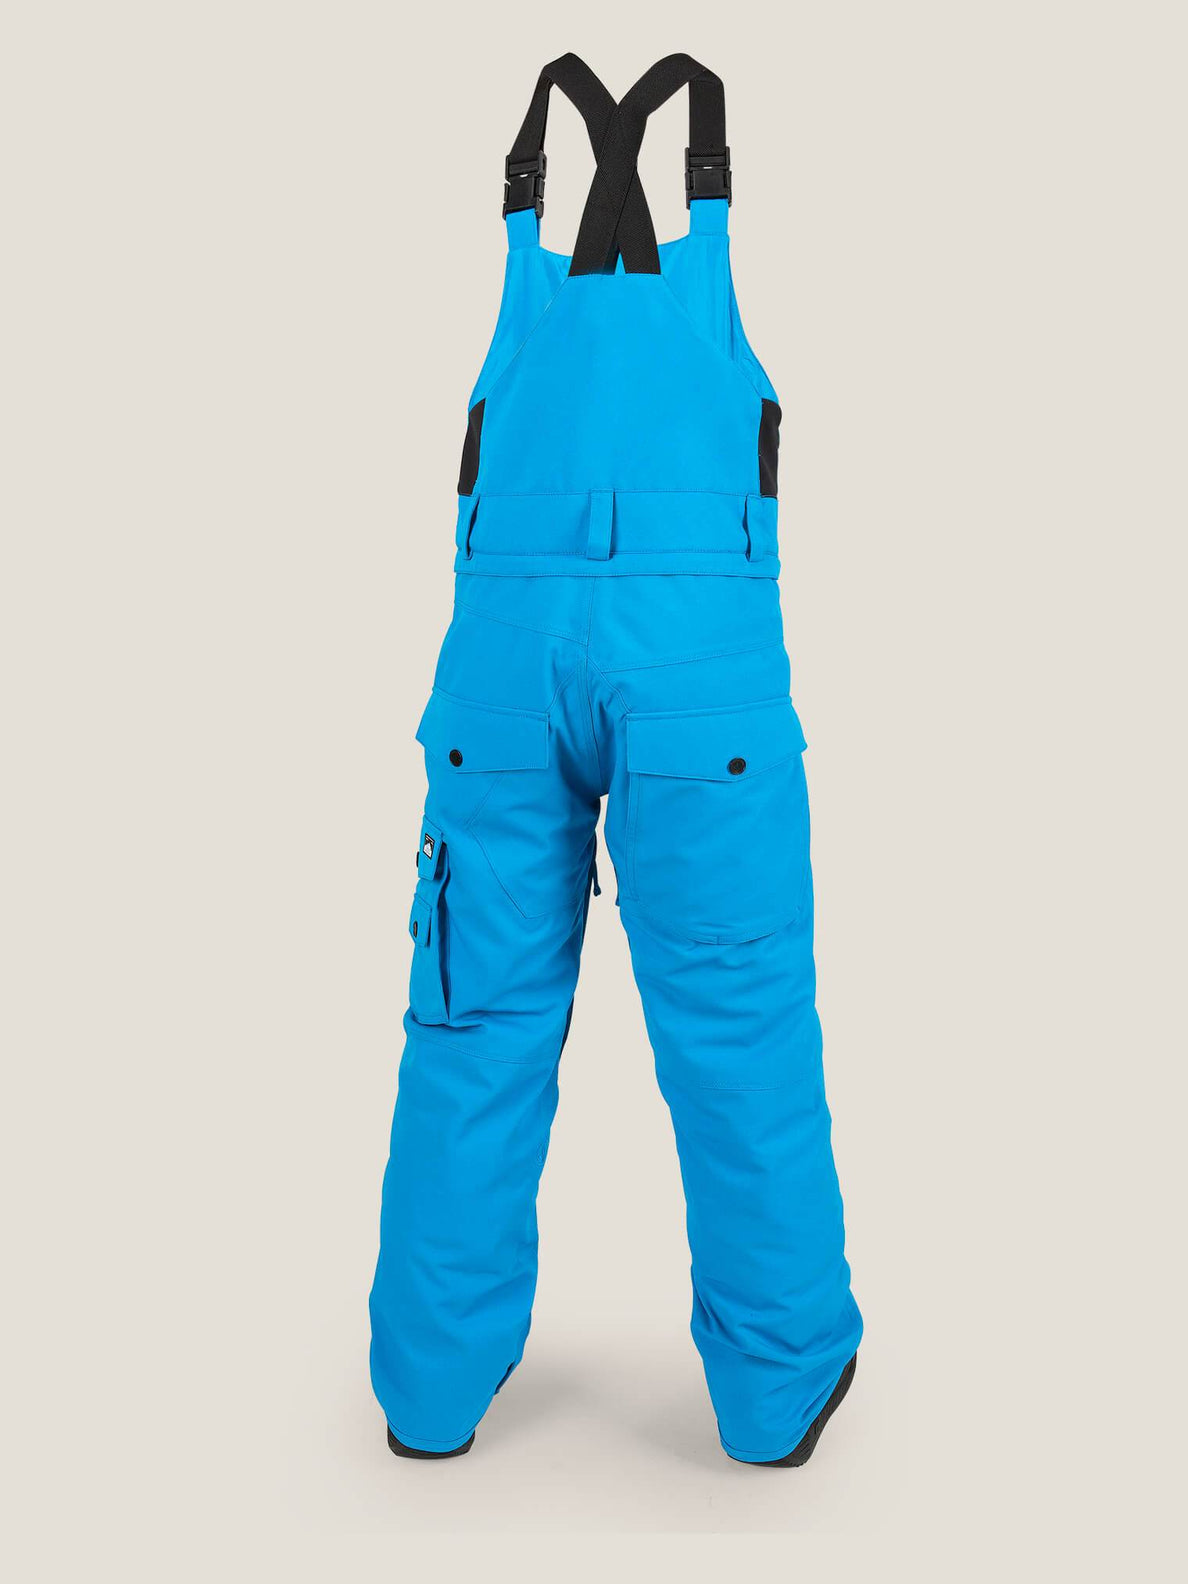 Sutton Insulated Overall In Blue, Back View